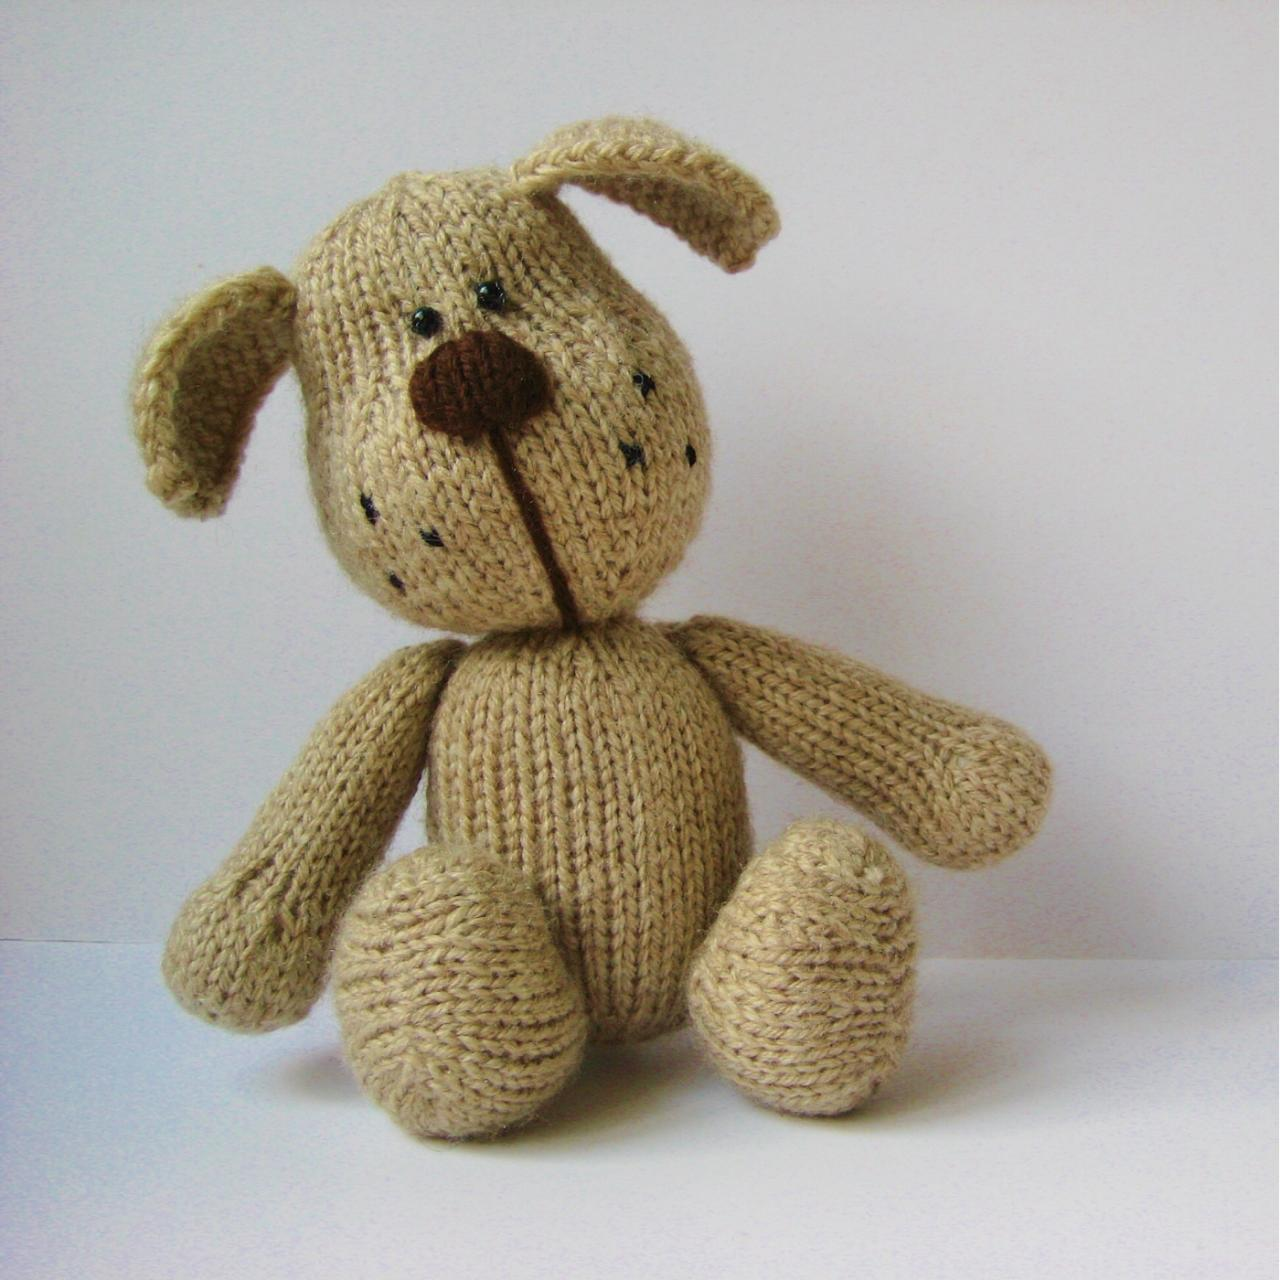 Free Knit Patterns For Dogs : Bernie The Dog Toy Knitting Pattern on Luulla